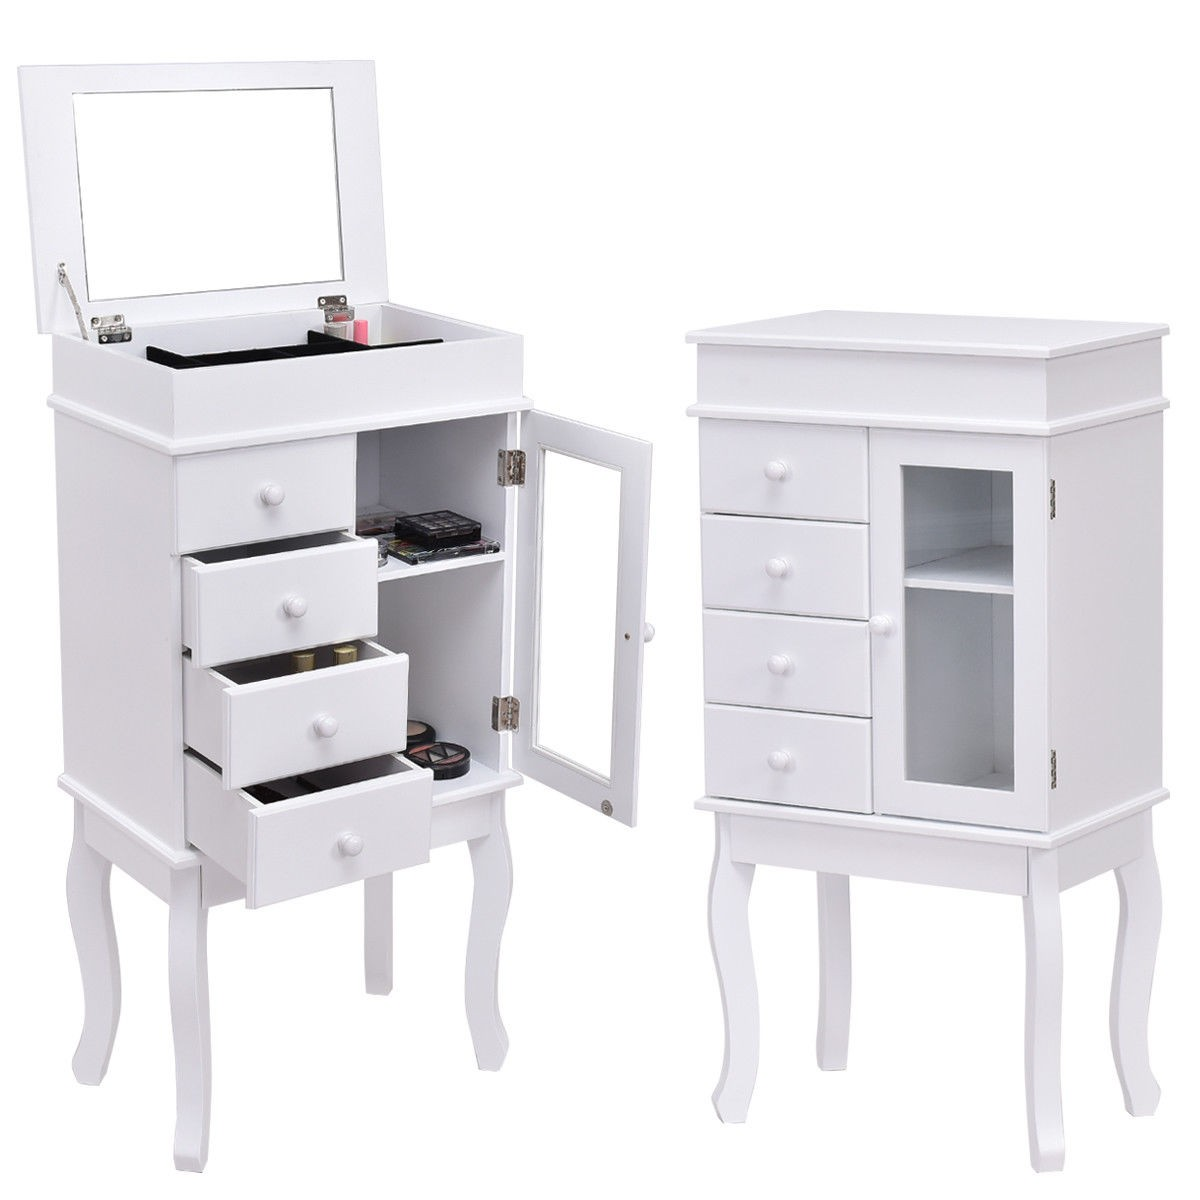 Wood Standing Mirrored Jewelry Armoire Storage Cabinet